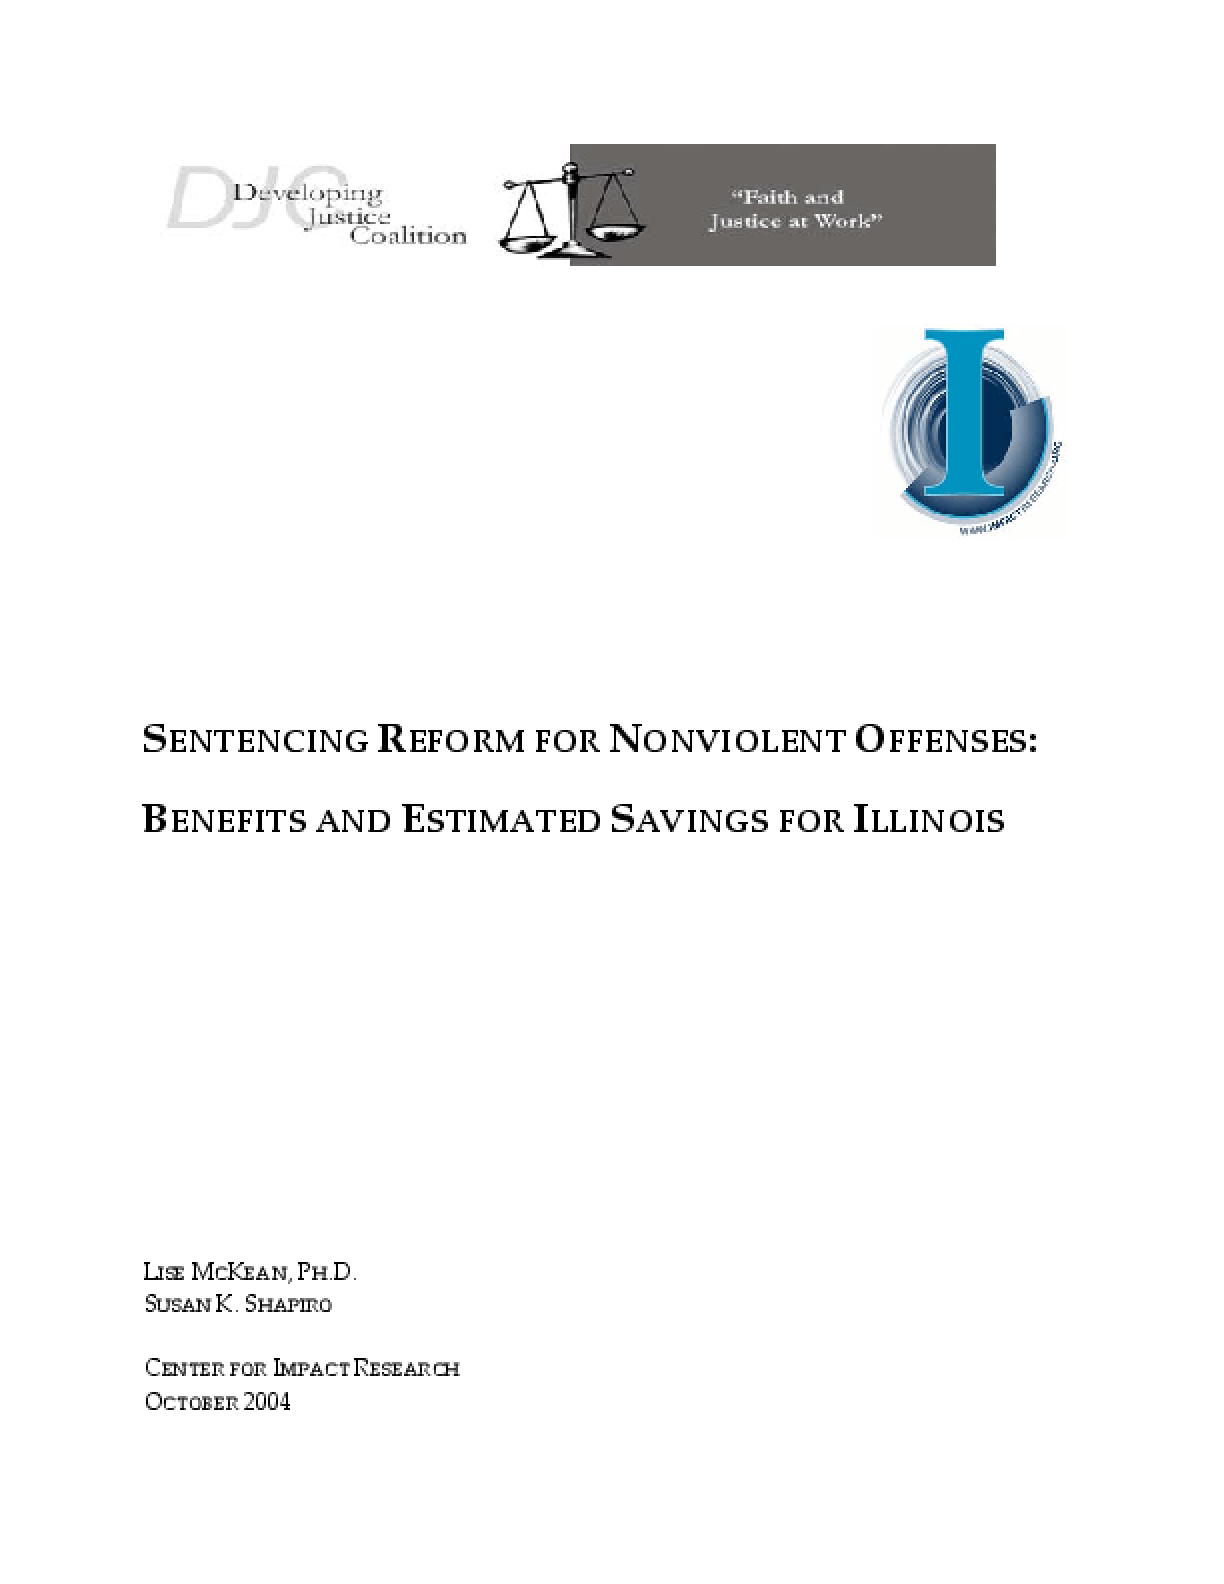 Sentencing Reform for Nonviolent Offenses: Benefits and Estimated Savings for Illinois